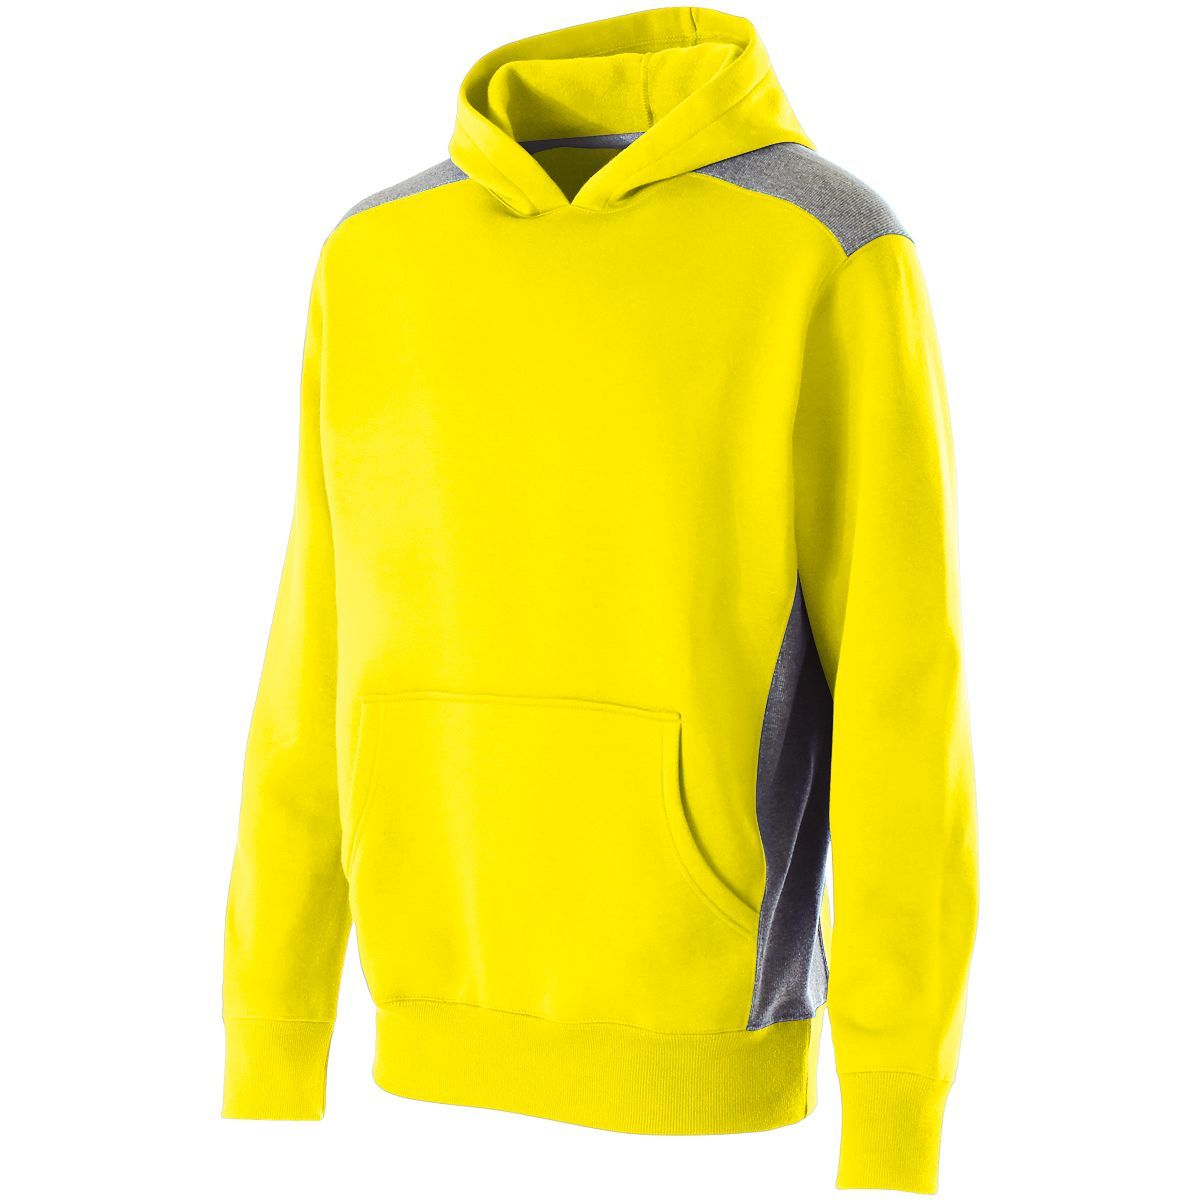 Youth Breakout Hoodie - BRIGHT YELLOW/VINTAGE GREY